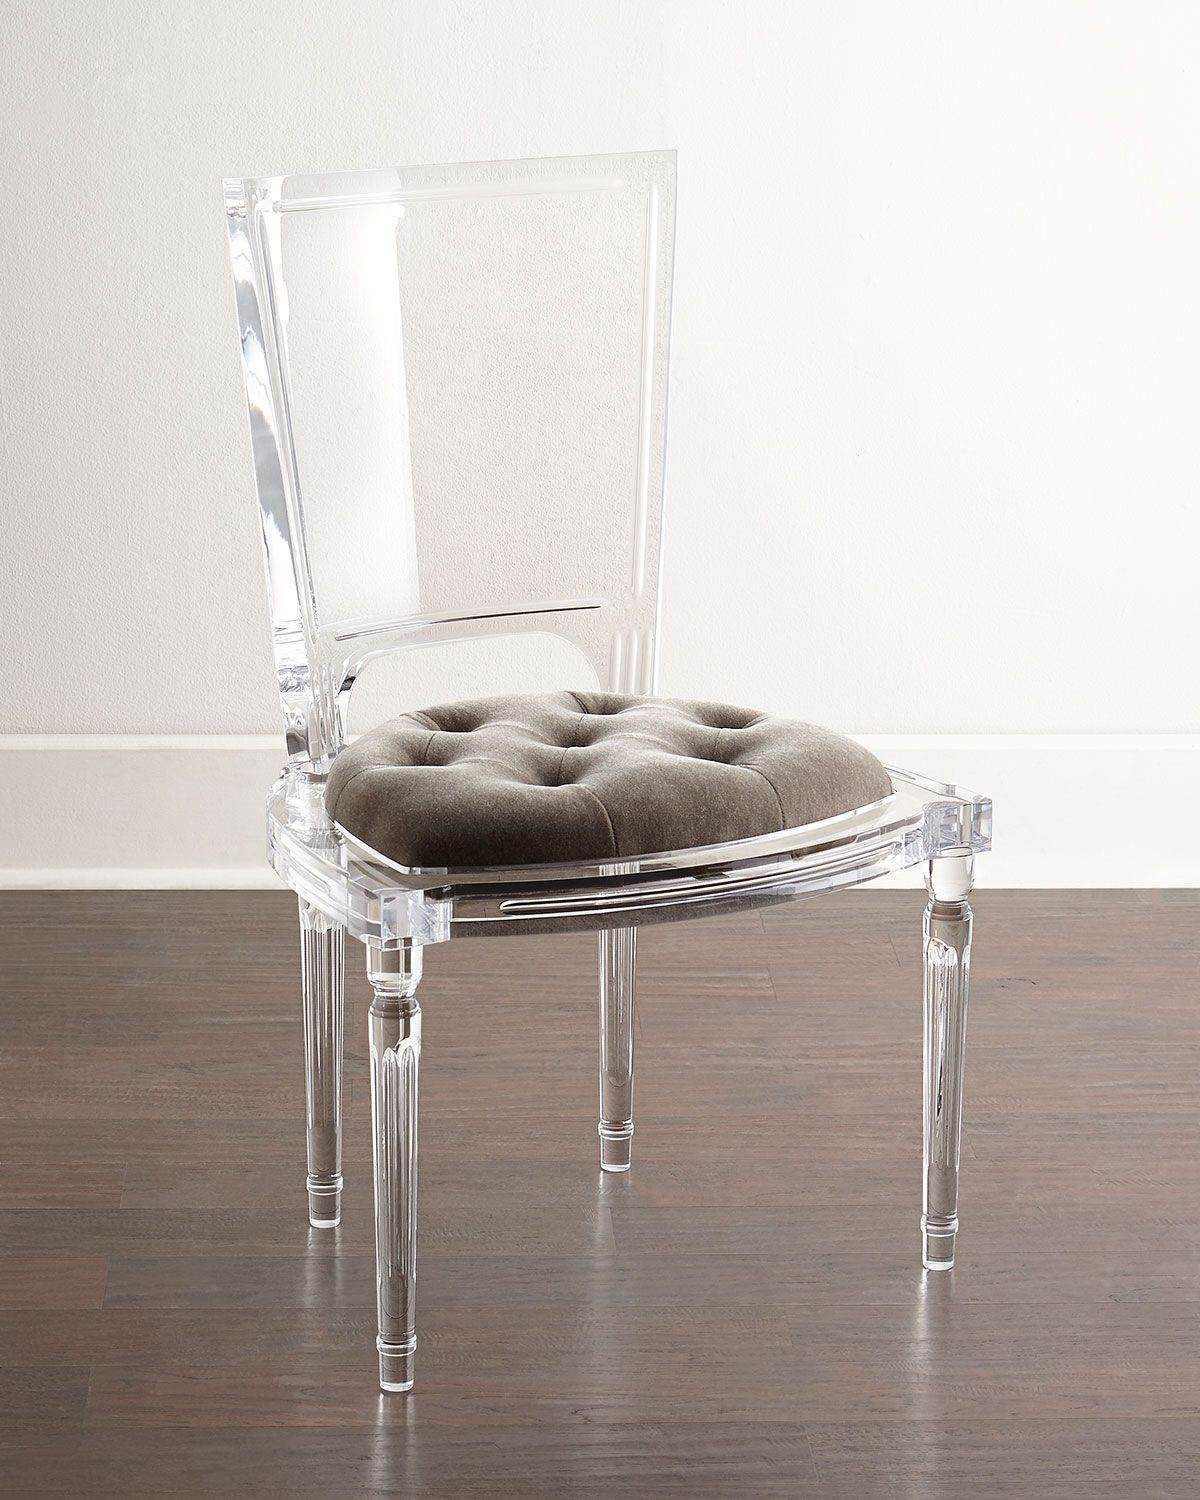 acrylic side chair with cushion cushions home depot has an frame and a tufted seat made of mohair polyester blend 23 5 w x 20 d 38 t in italy